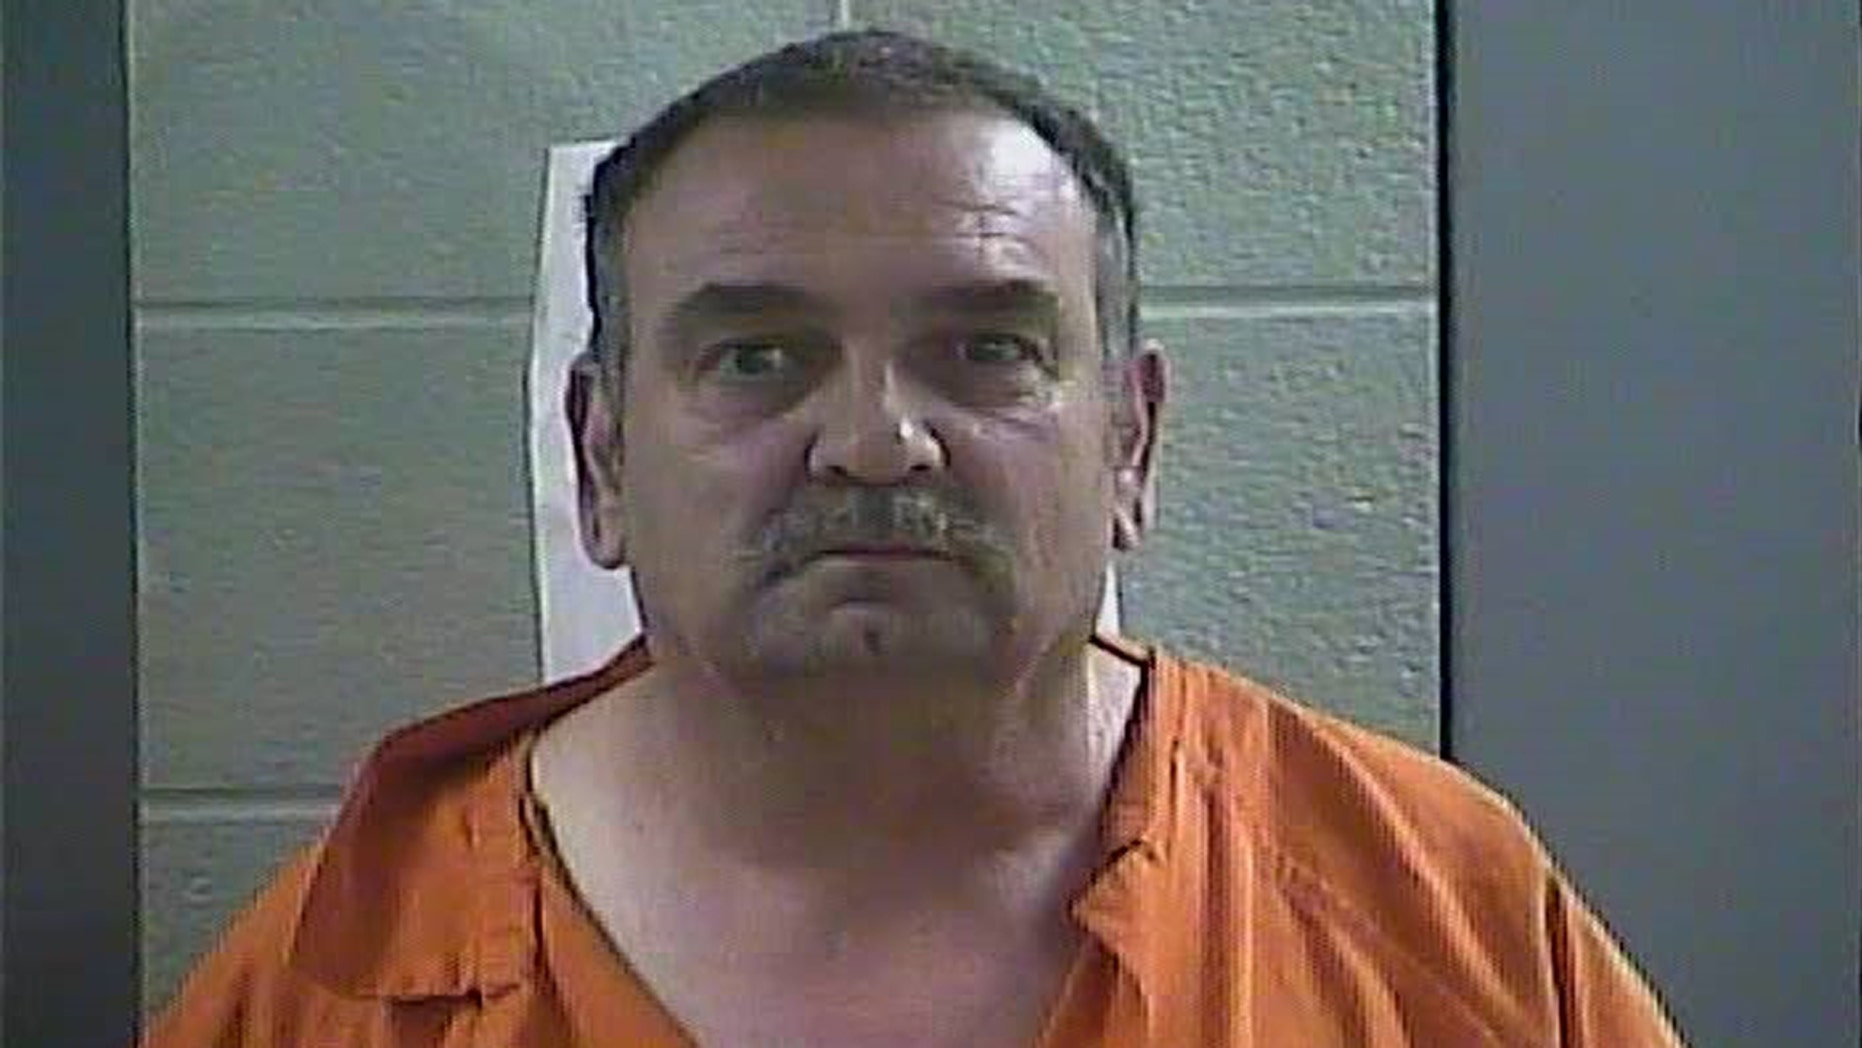 Robert Phillips was arrested Monday after authorities found a girl who was reported missing in his semi-truck in Kentucky.